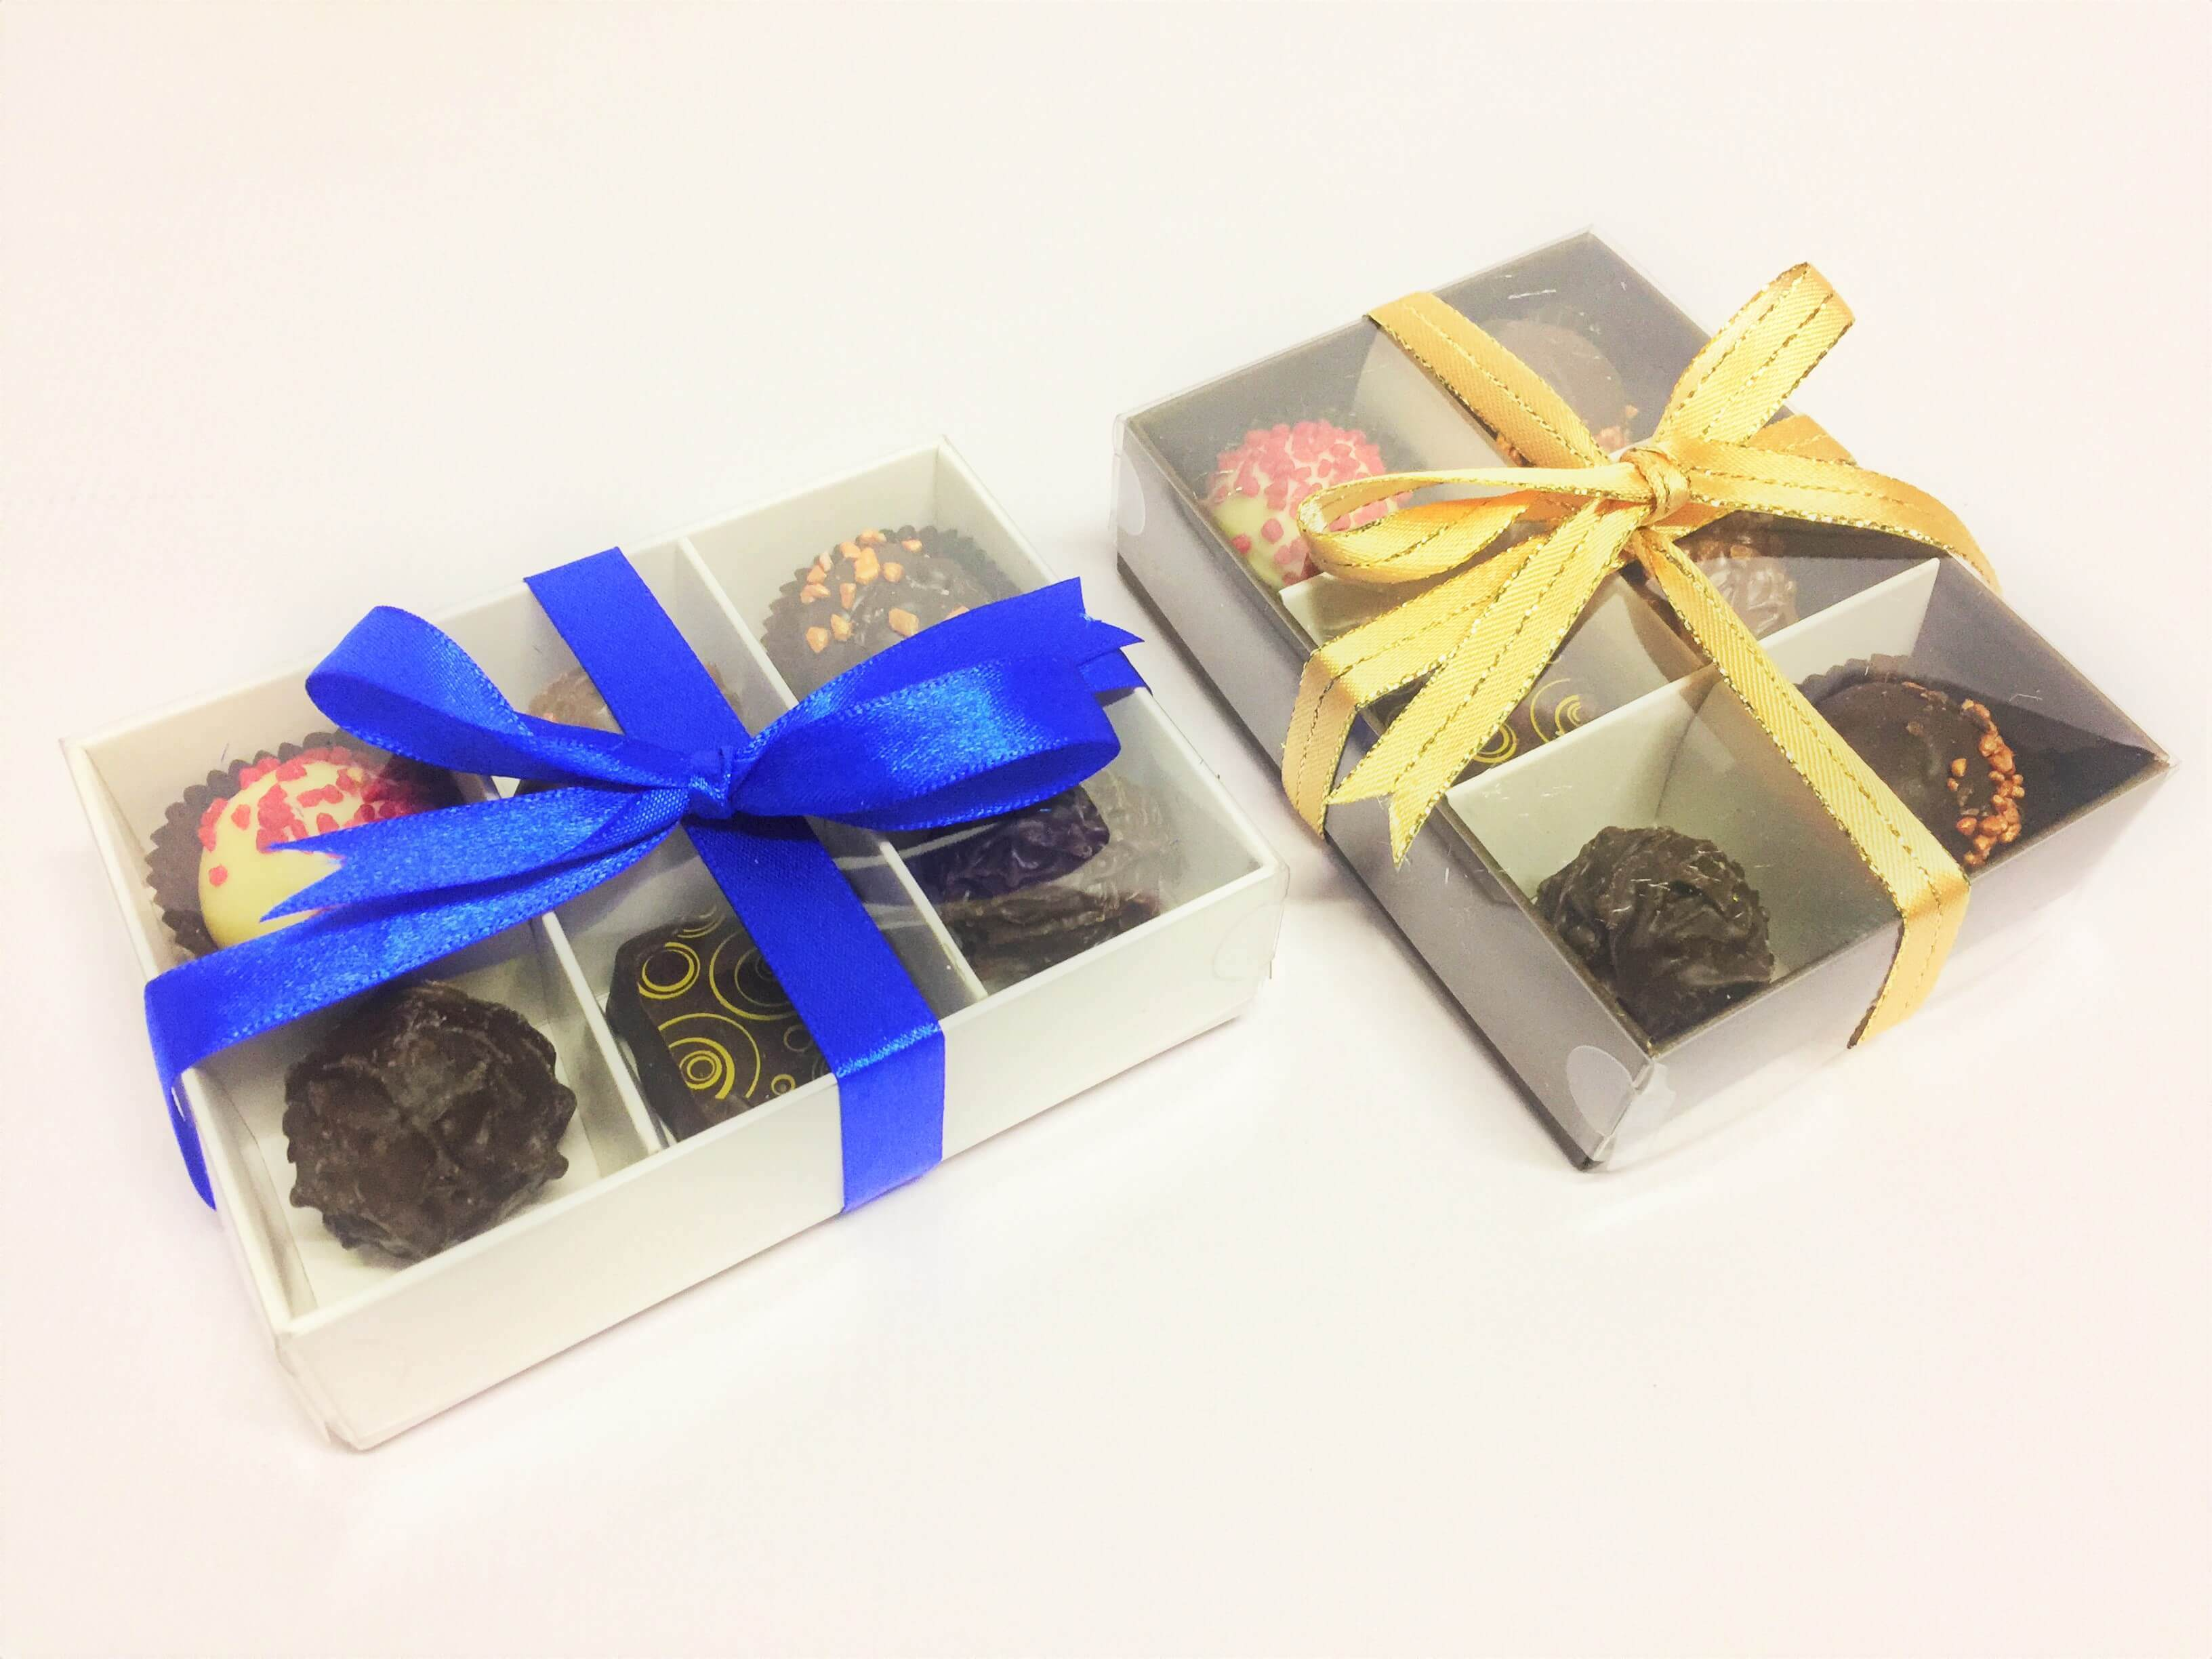 Base & Plastic Lid 6 Pack Truffle/Chocolate Box with Insert